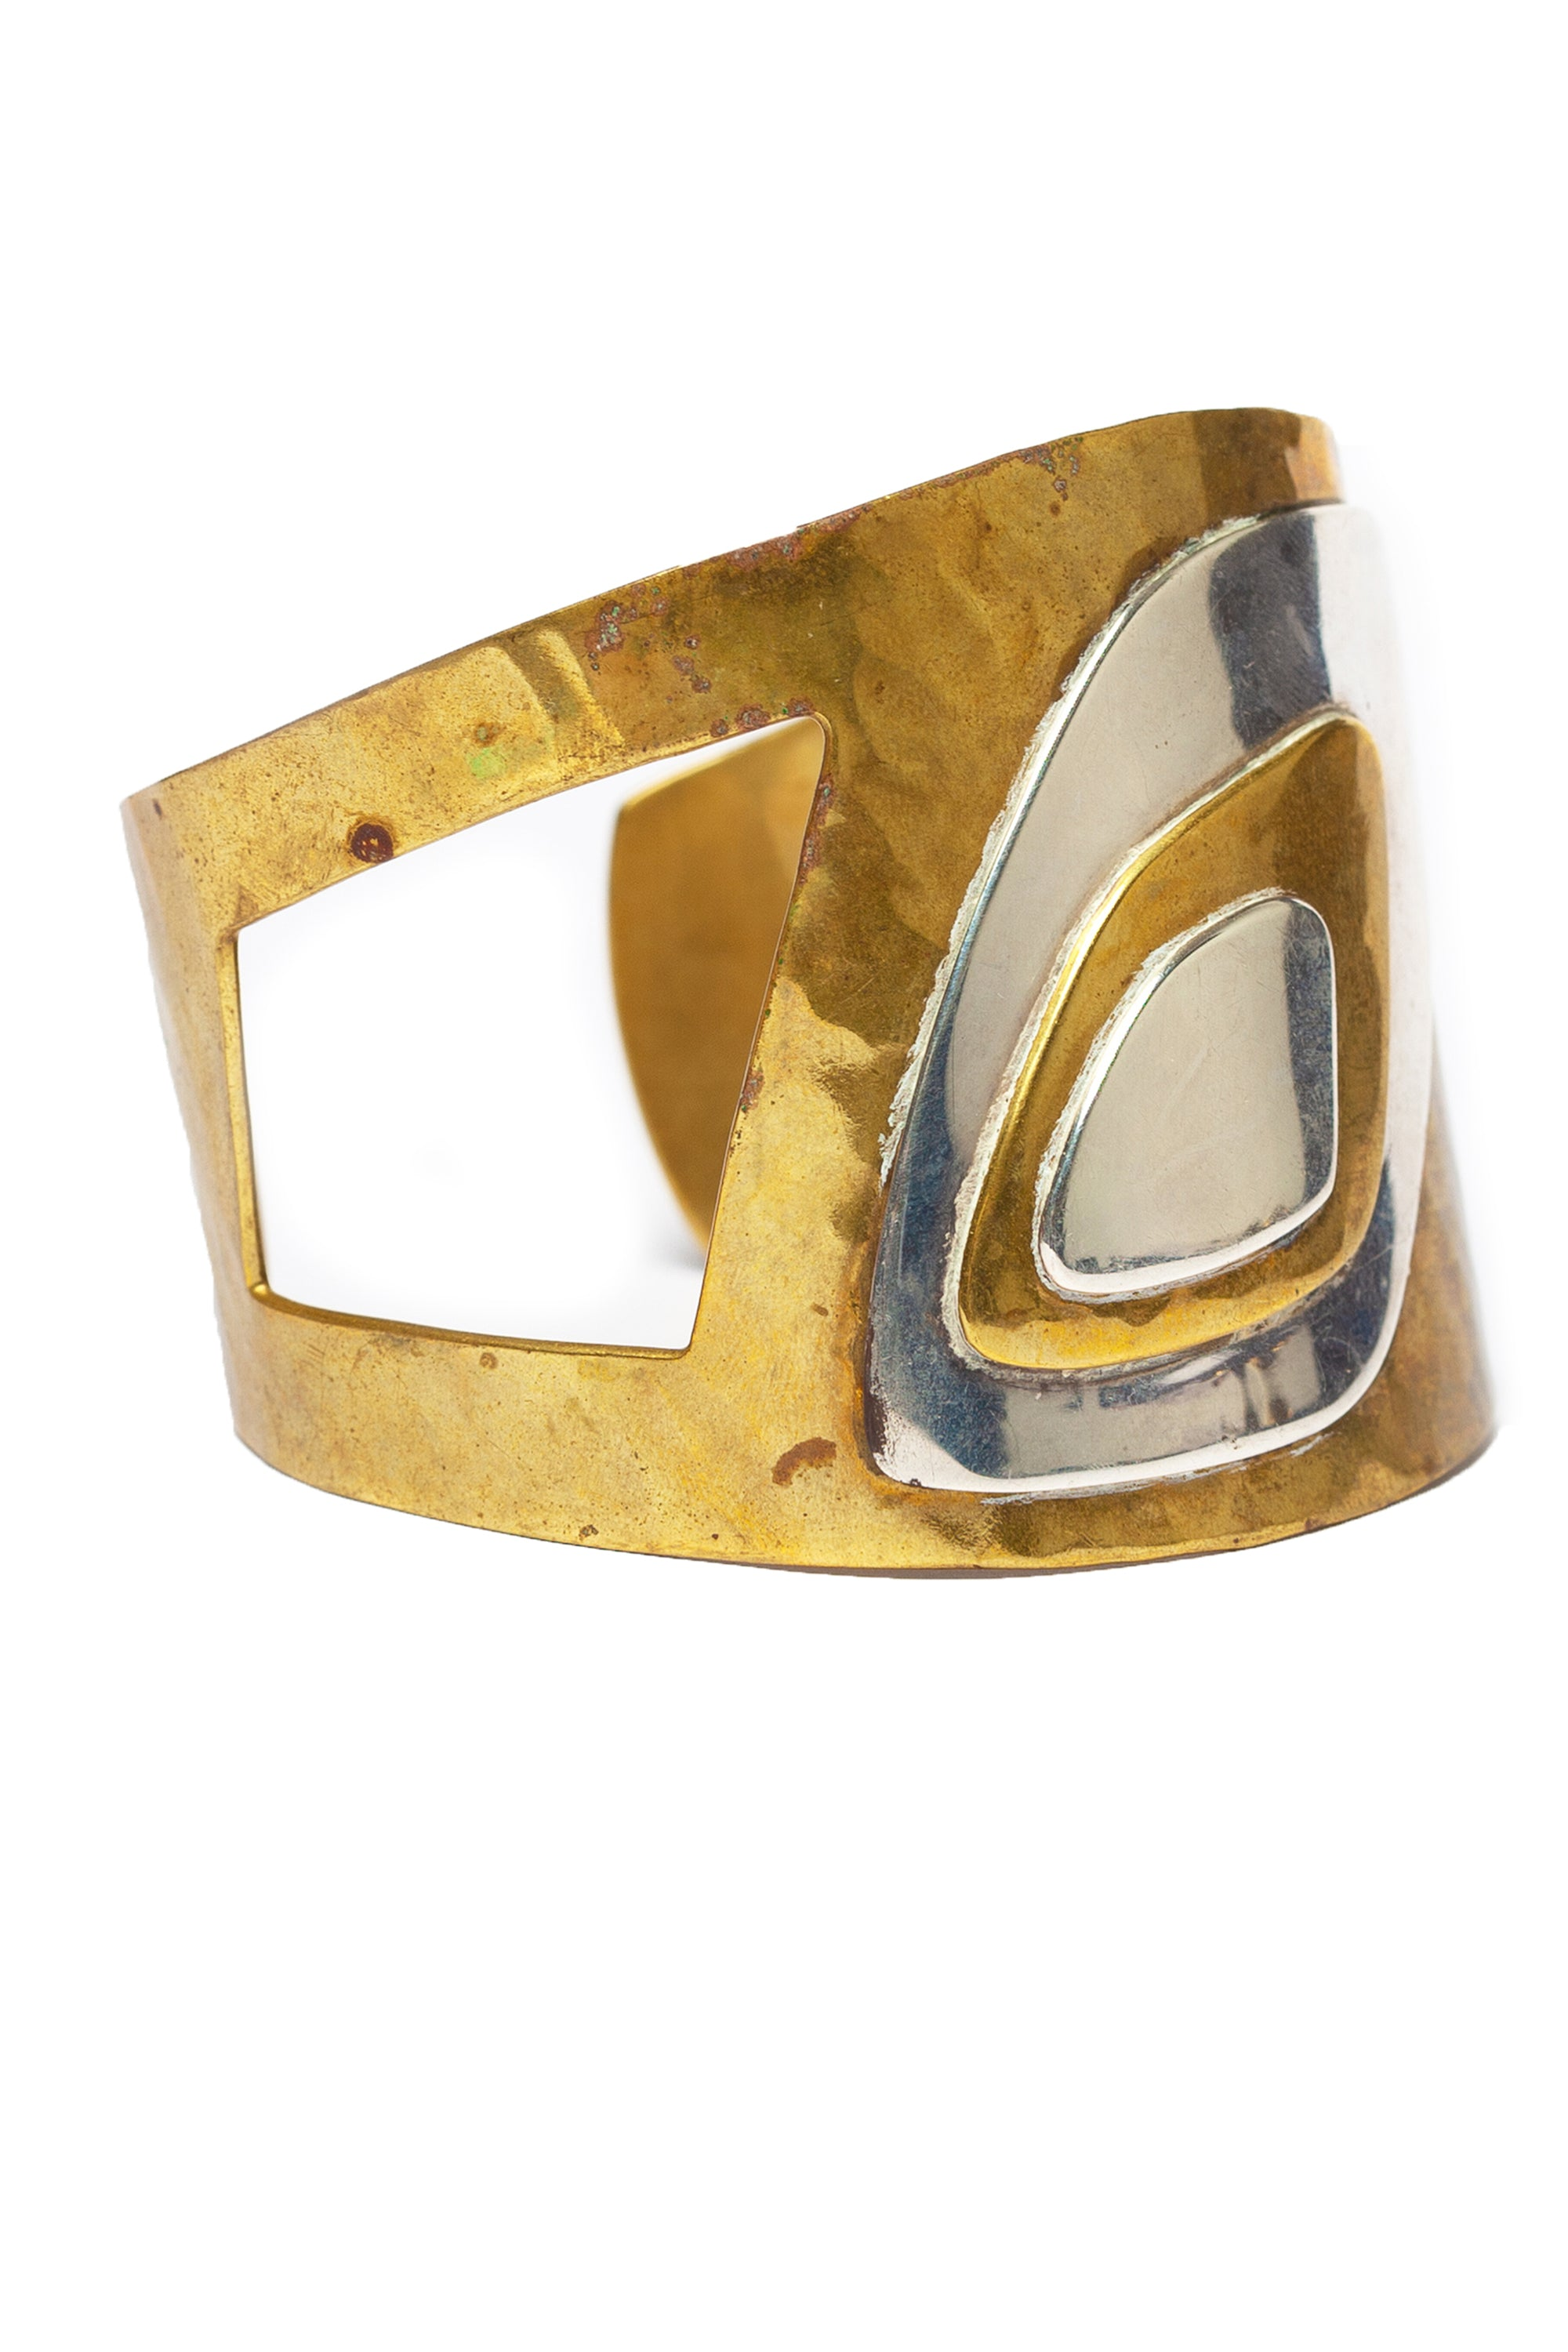 Vintage <br> 60's Mexican brass bangle